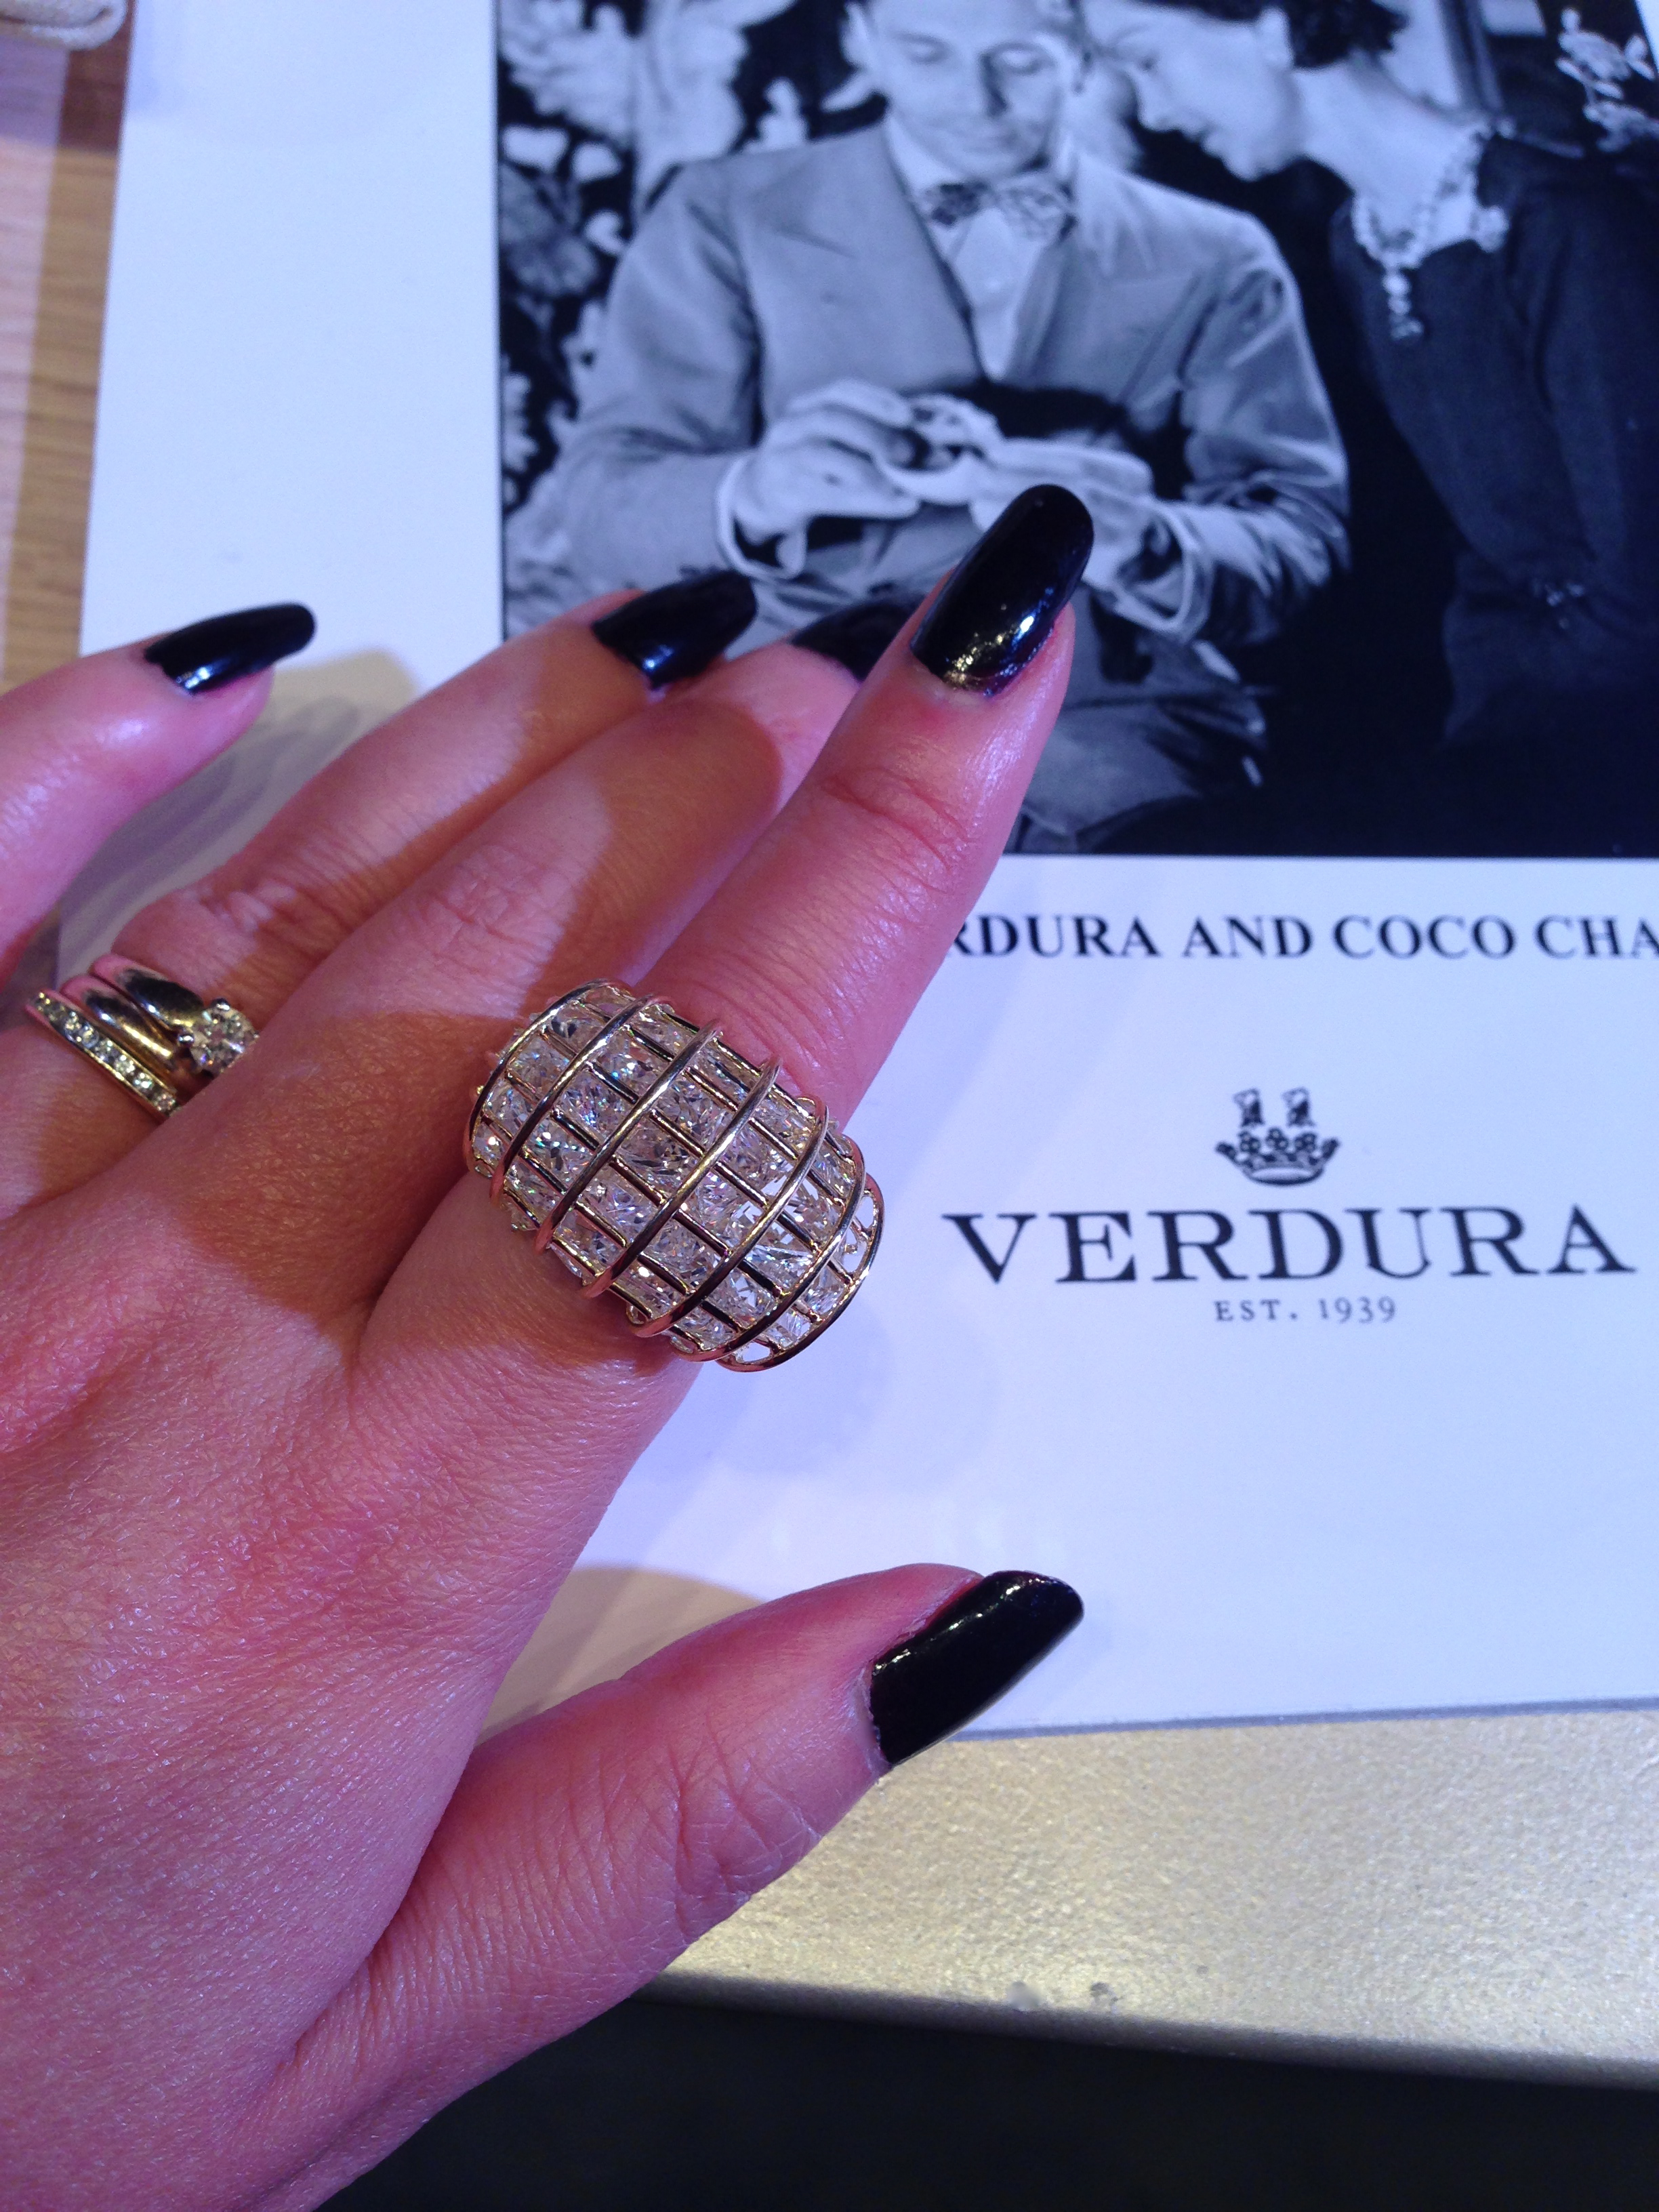 Luxury Jeweller Verdura & Coco Chanel